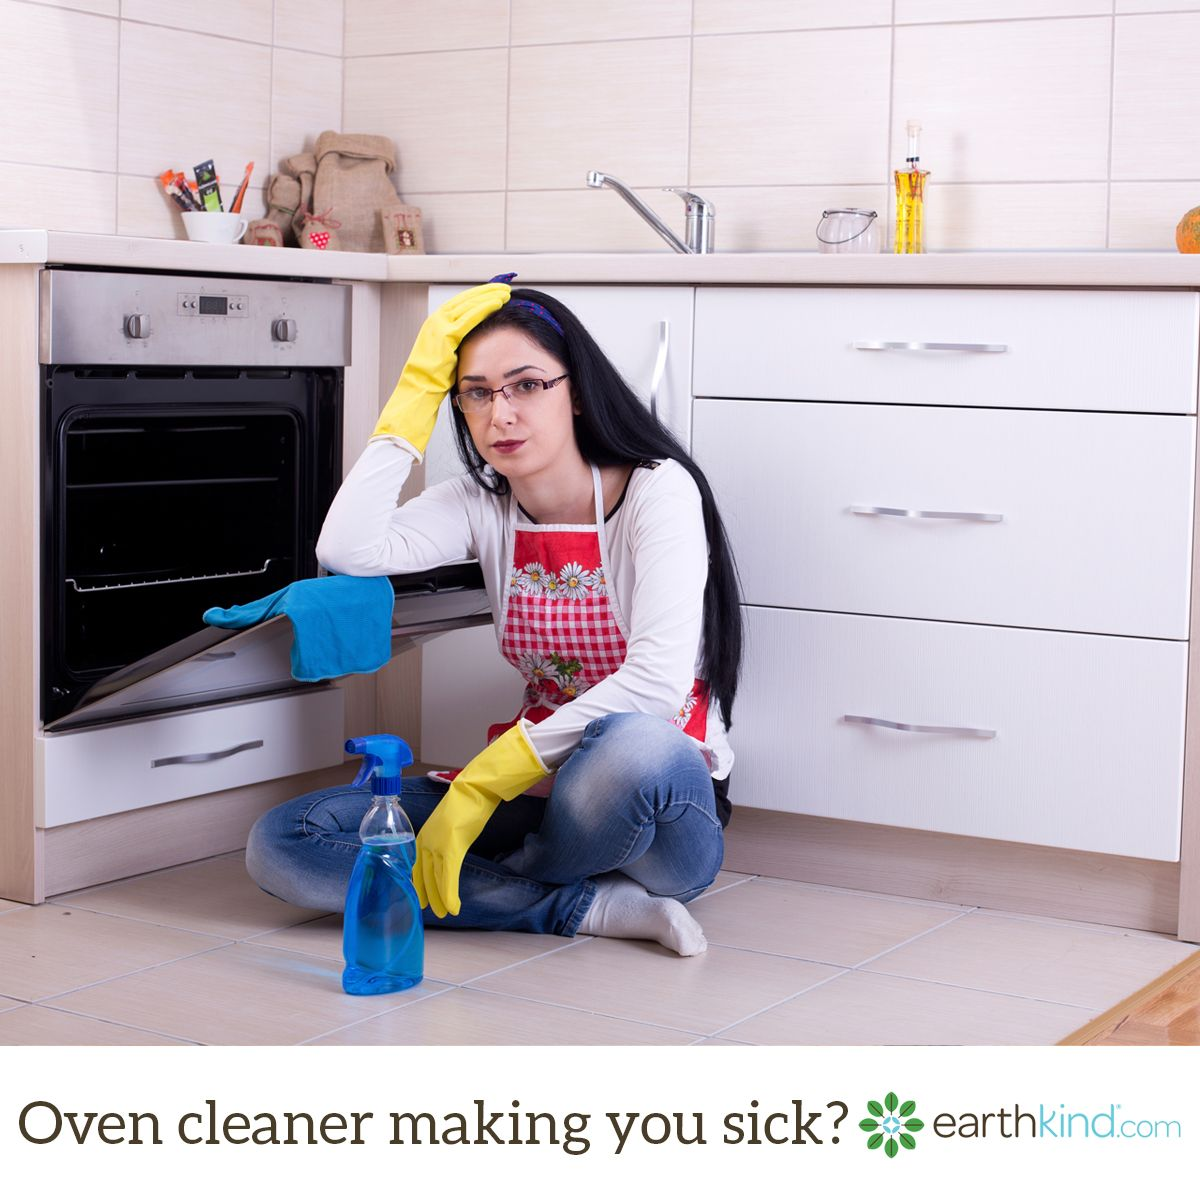 Are the fumes from your oven cleaner making you sick